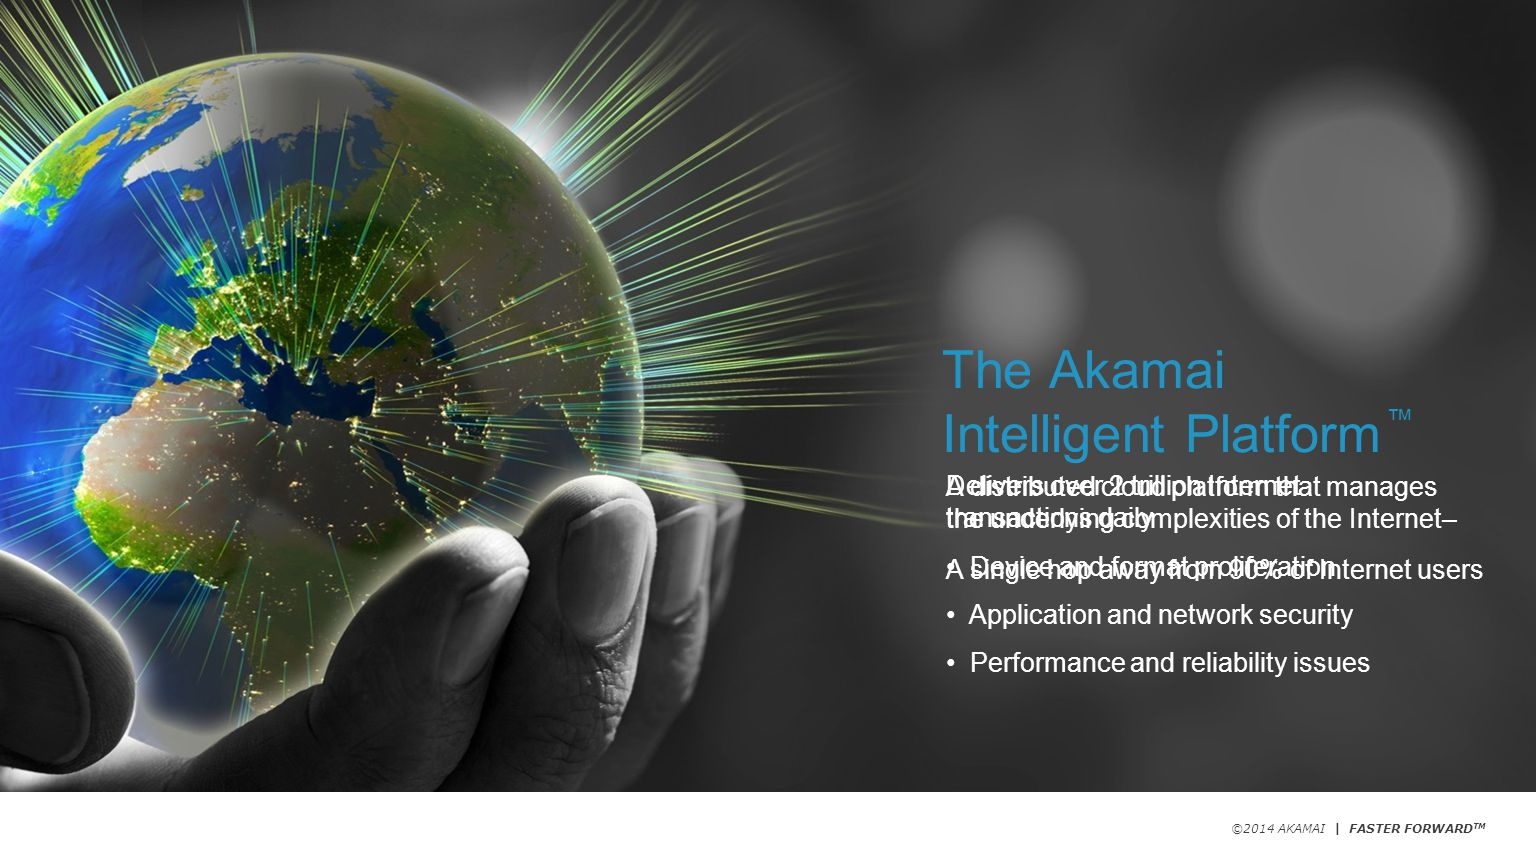 The Akamai Intelligent Platform